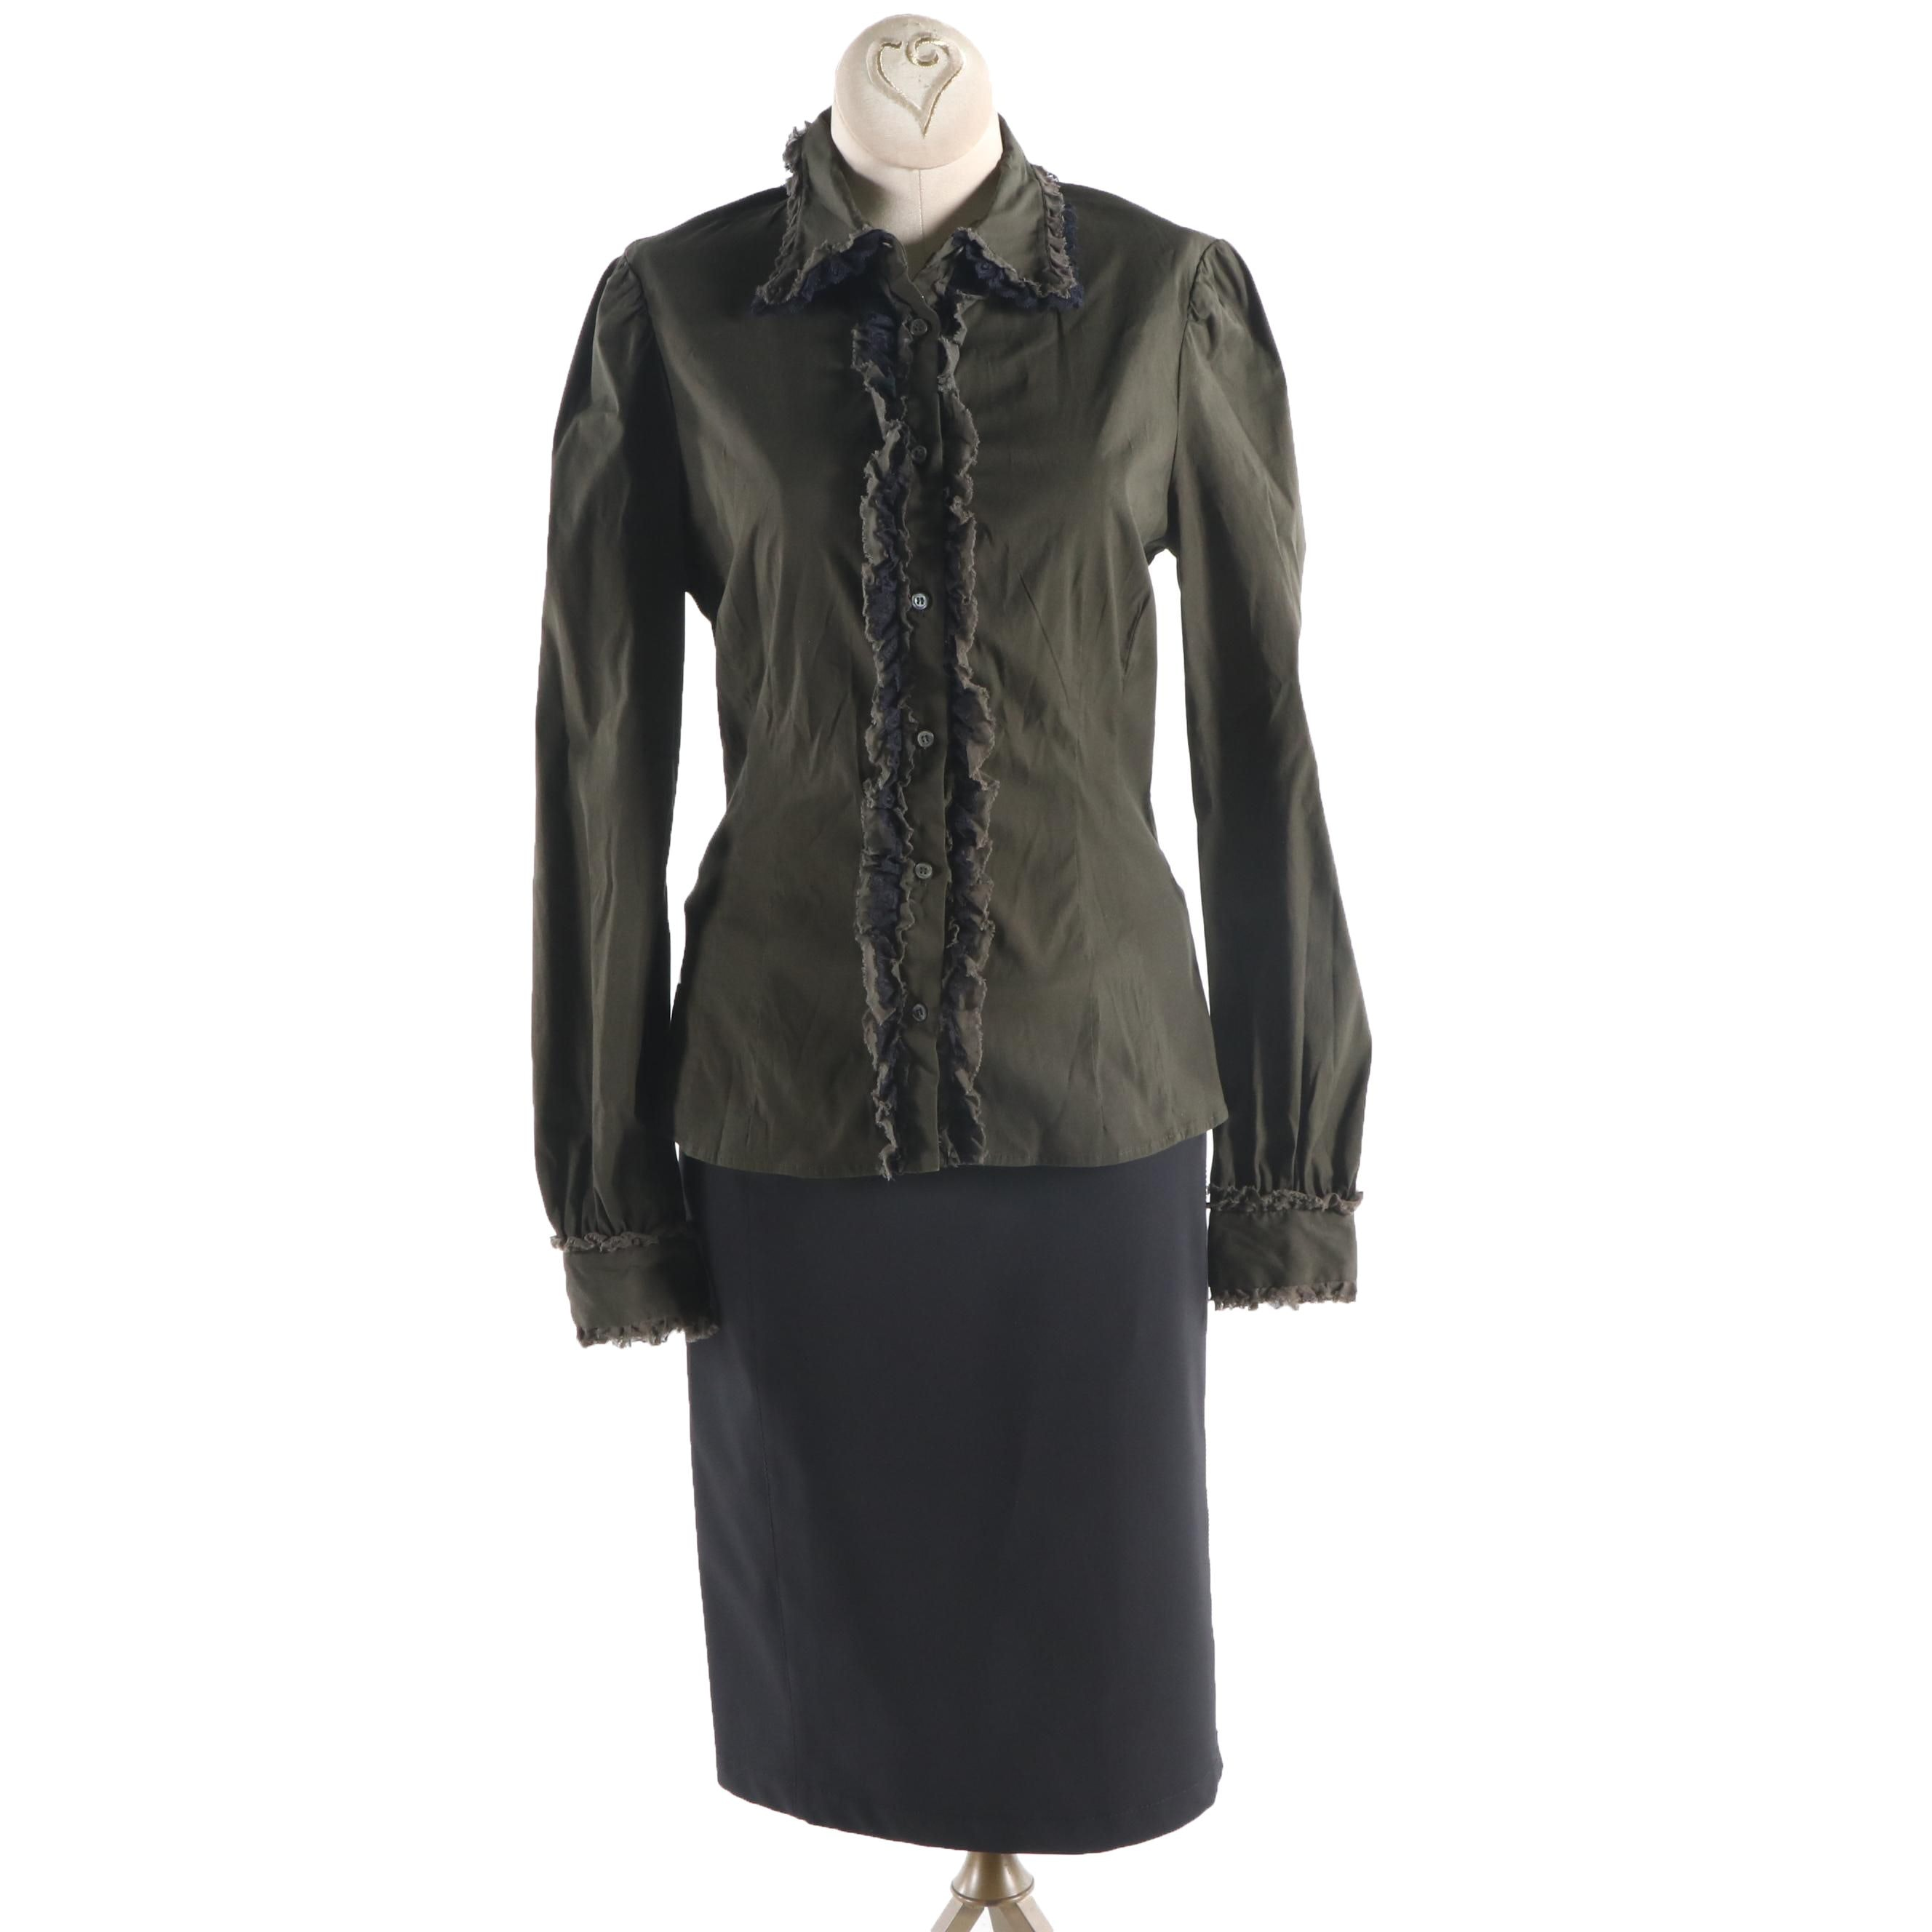 Women's Prada Olive and Black Ruffled Button-Front Blouse and Black Skirt